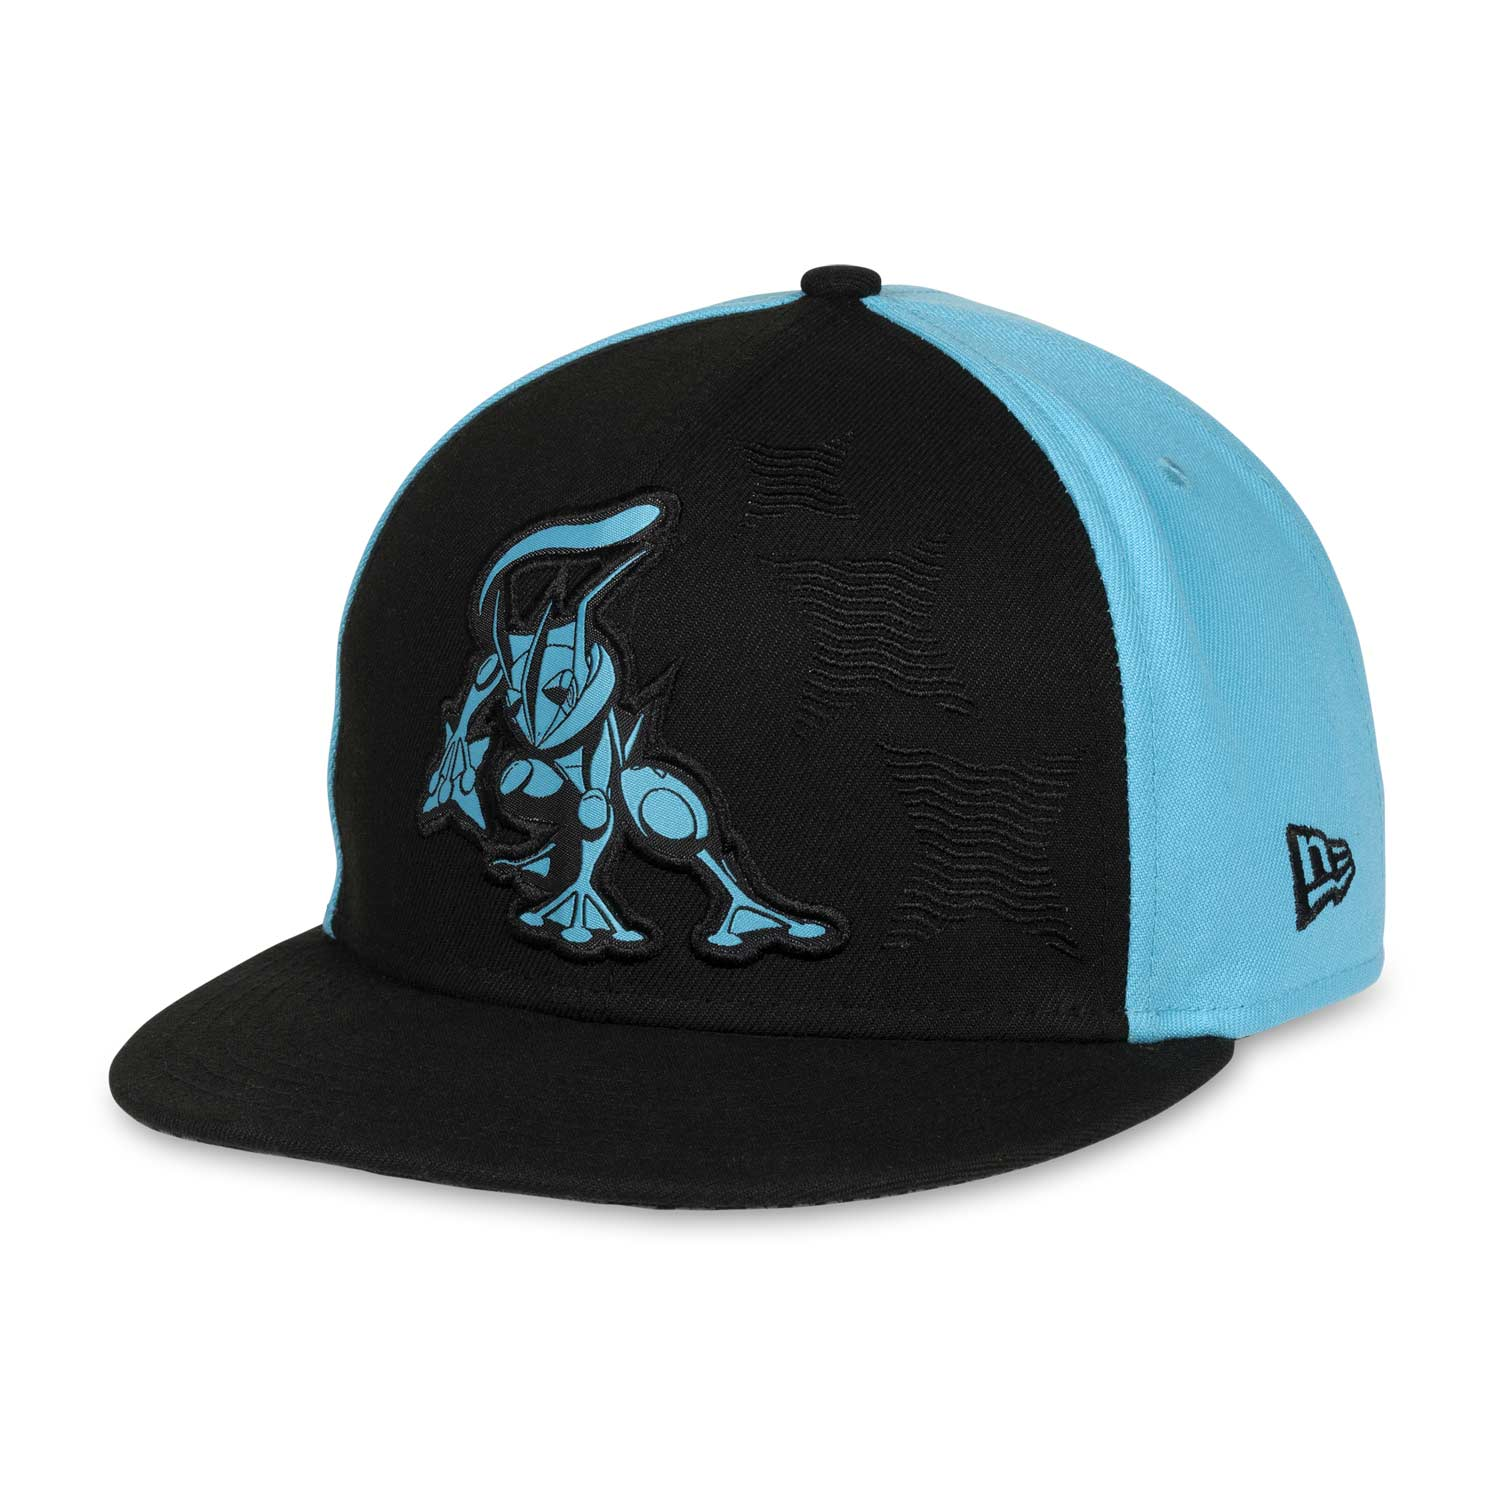 caab0ec7555a32 Image for Greninja Stealth 9FIFTY Baseball Cap by New Era (One Size-Adult)